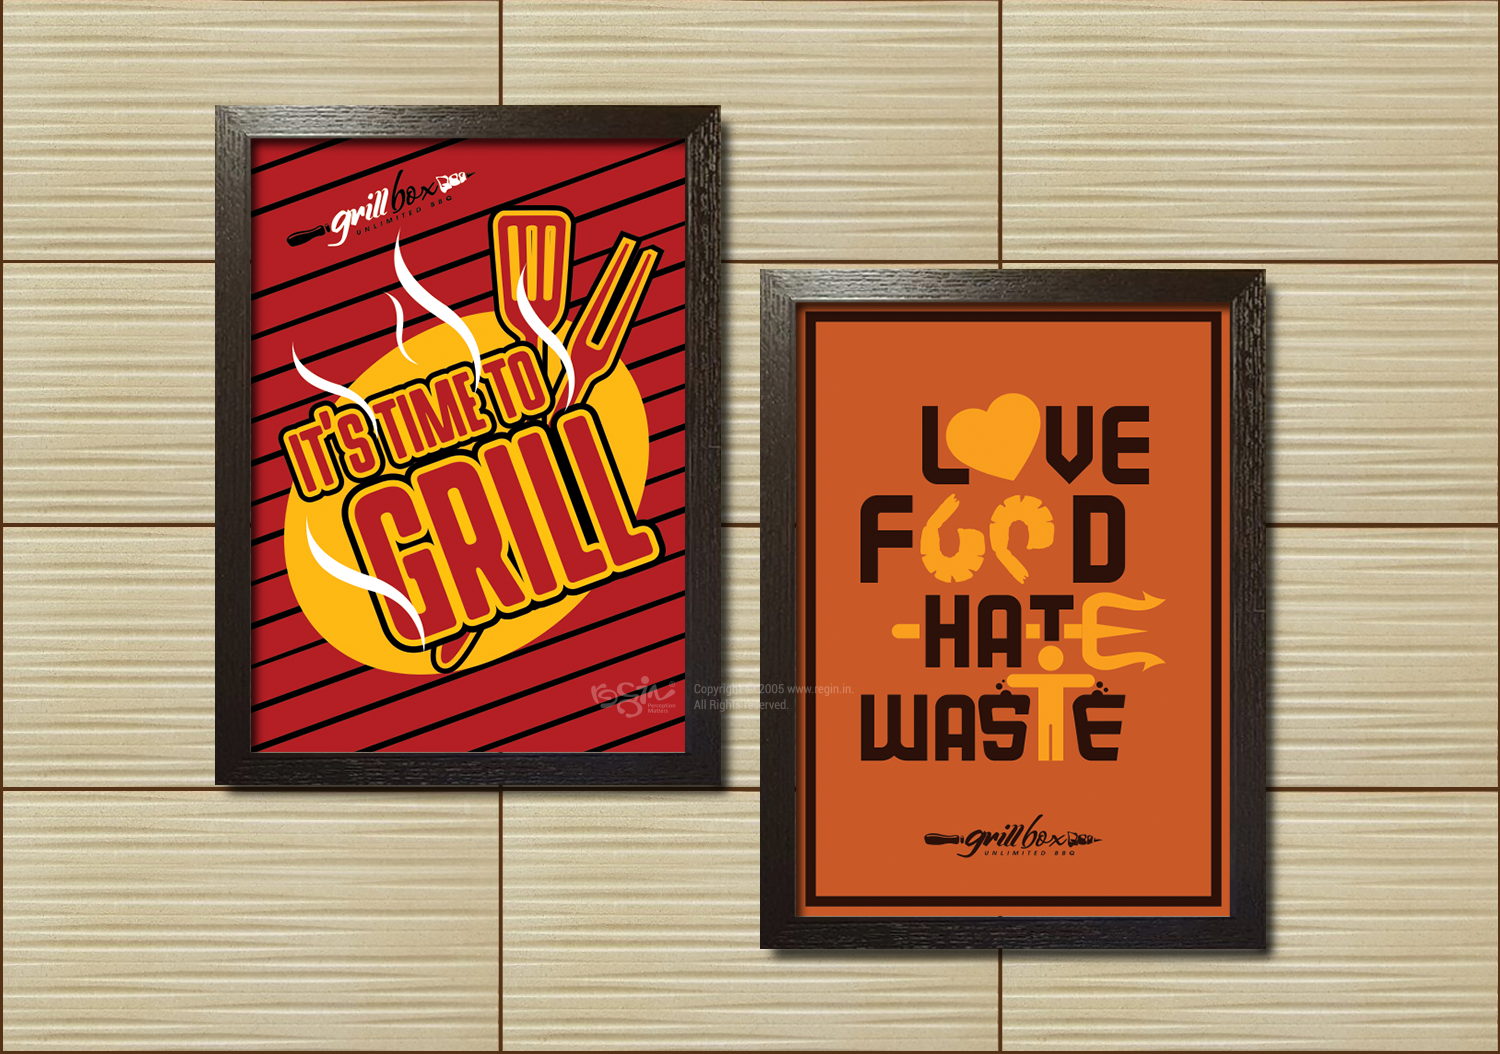 Grill Box quote posters